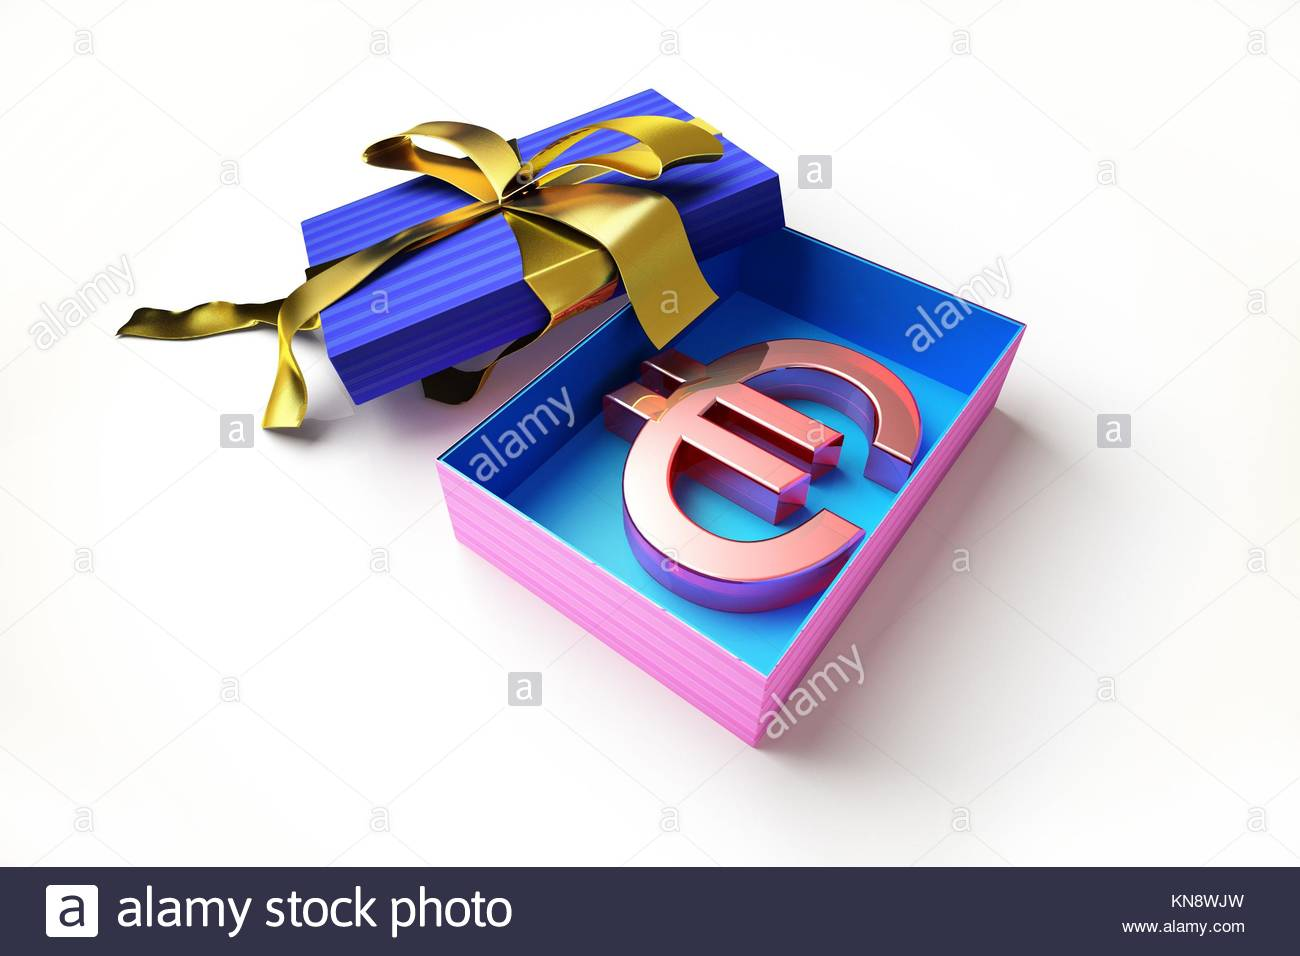 Opened Gift Box With Golden Ribbon With The Euro Symbol Inside On